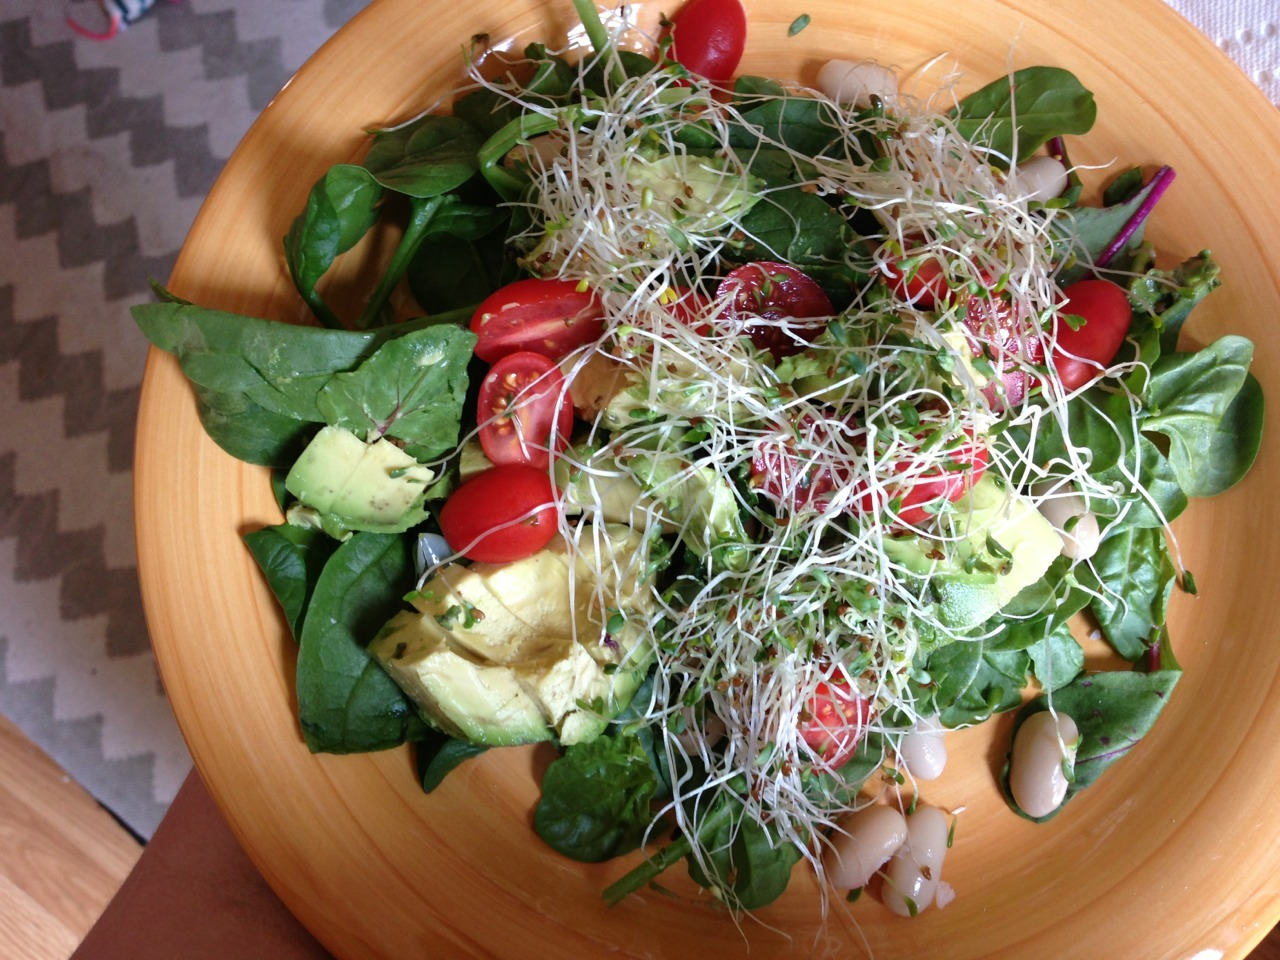 Today's lunch: spinach, baby chard, white beans, half an avocado, grape tomatoes and alfalfa sprouts. Taking a break from my shift at the gym for the delicious sunny salad. Next time I'll add some walnuts for protein!